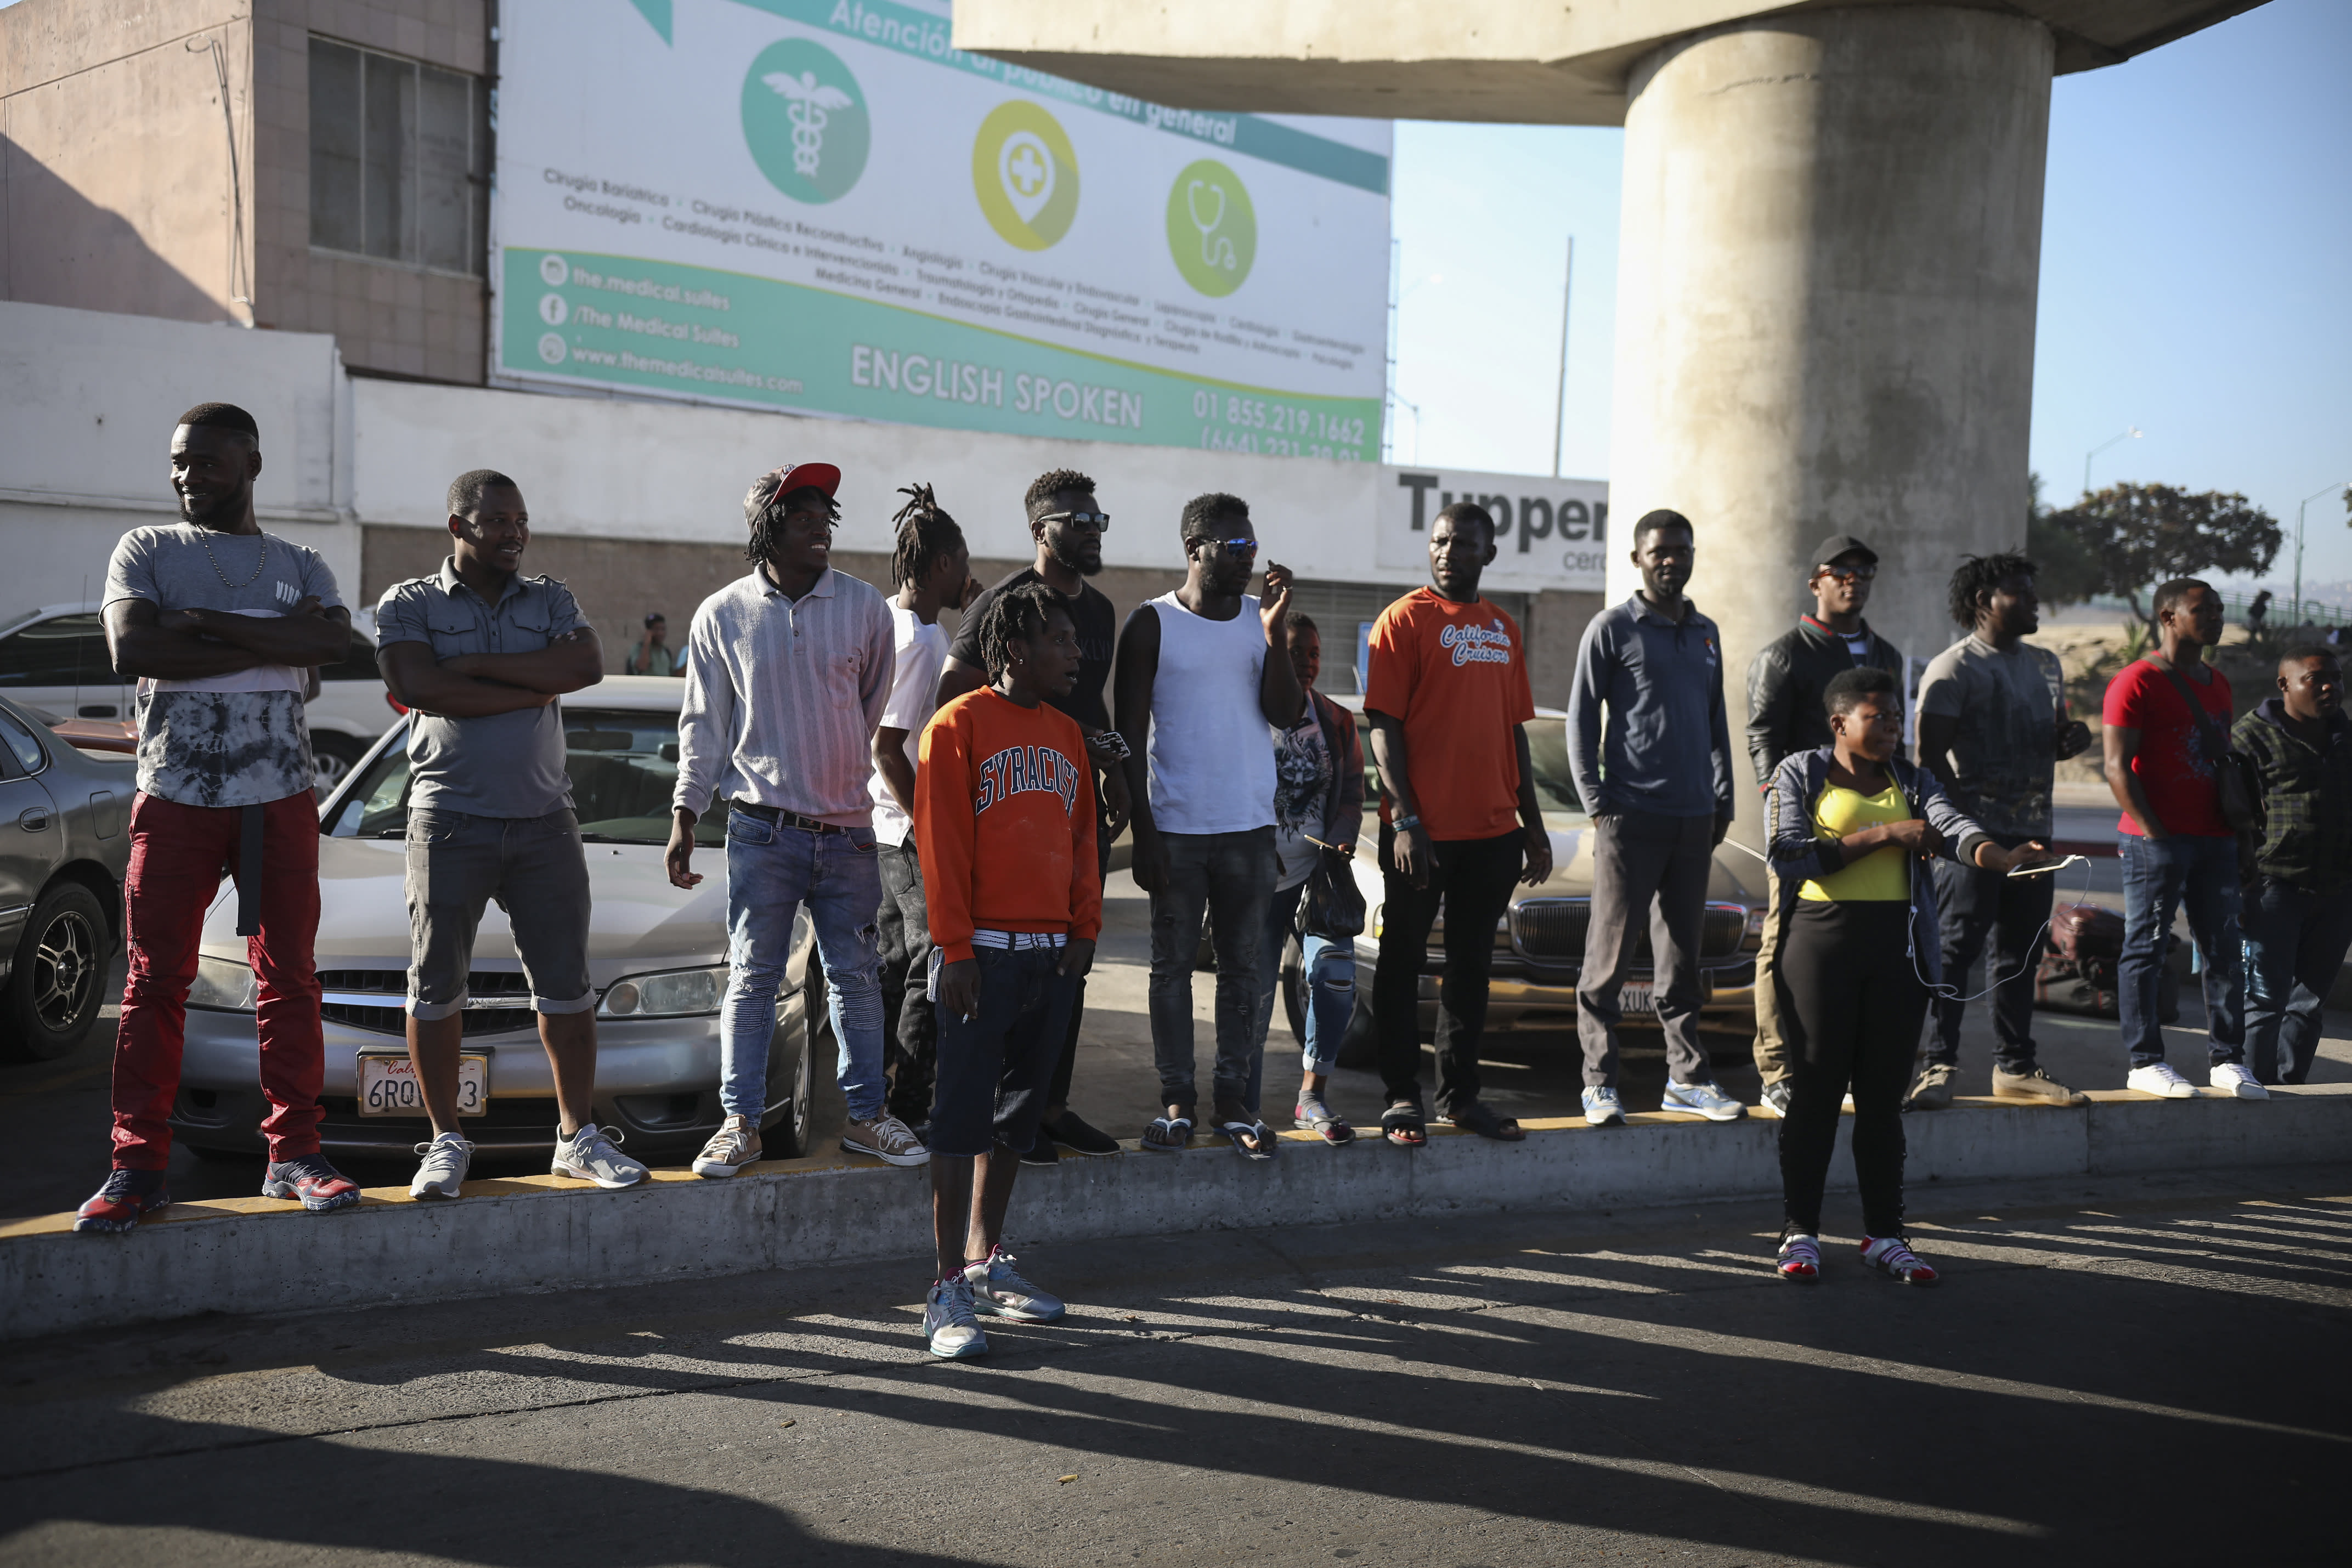 Migrants from Haiti and Africa wait to see if their number will be called to cross the border apply for asylum in the United States, at the El Chaparral border crossing in Tijuana, Mexico, Friday, Sept. 13, 2019. Dozens of immigrants lined up Friday at a major Tijuana border crossing waiting to learn how the Trump administration's radical new restrictions on who qualifies for asylum would affect the tens of thousands of migrants stuck on the Mexican border seeking refuge.(AP Photo/Emilio Espejel)